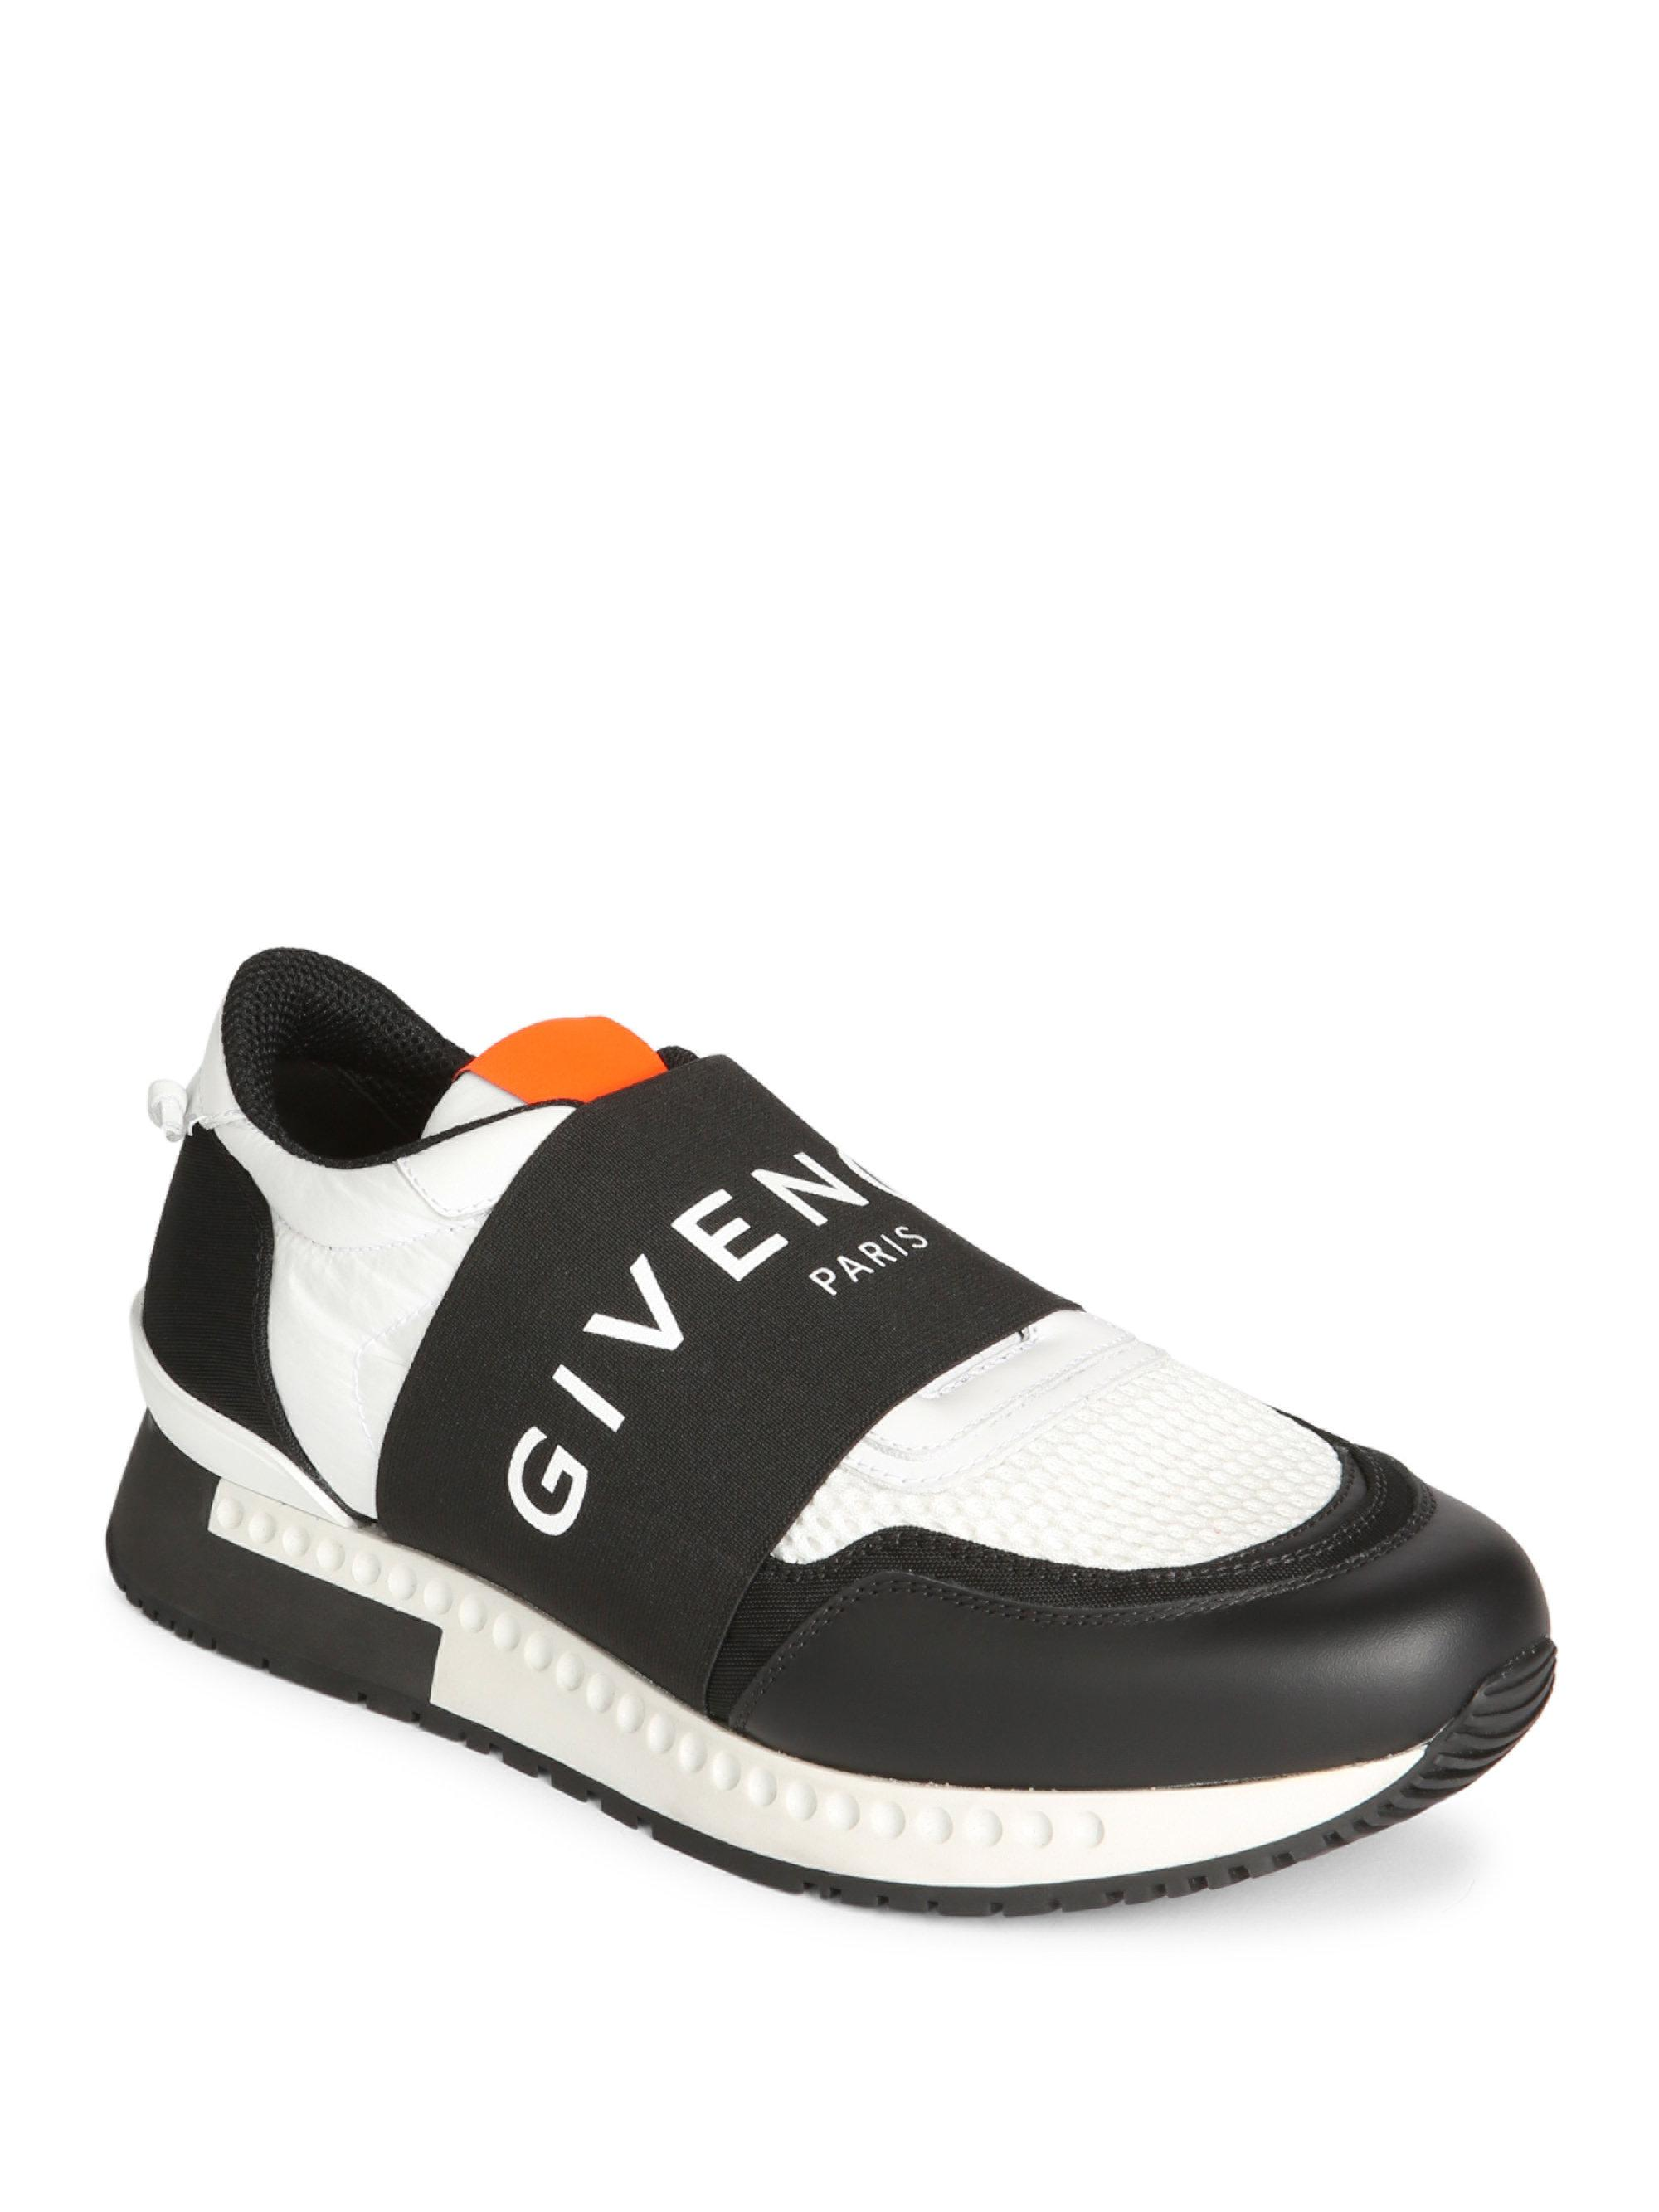 Lyst Givenchy Runner Elastic Logo Sneakers In Black For Men